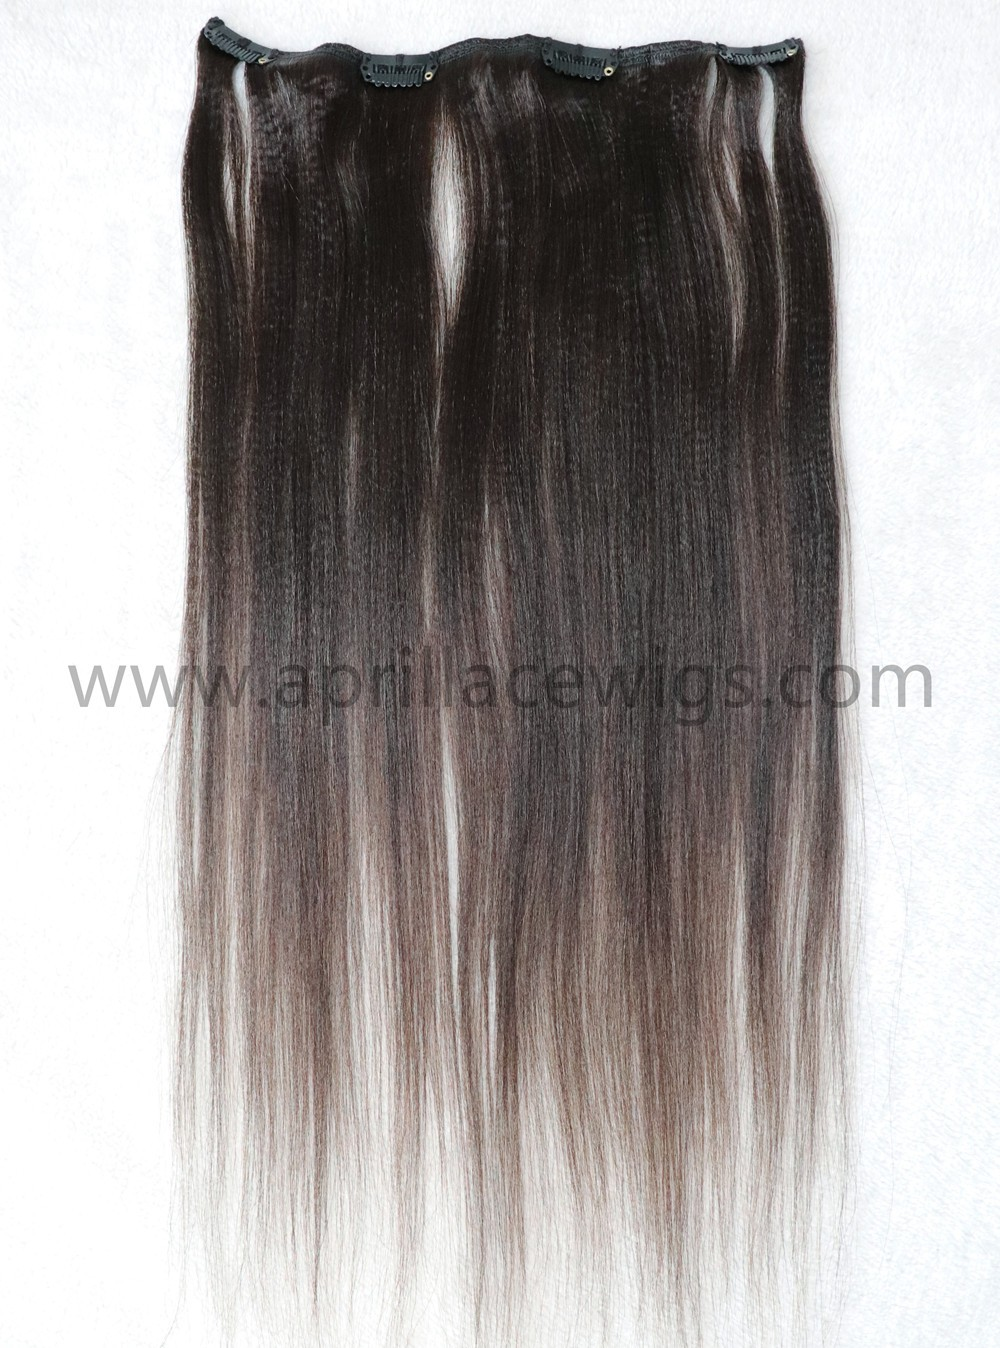 clip in extensions, light yaki hair, yaki clip-ins extension